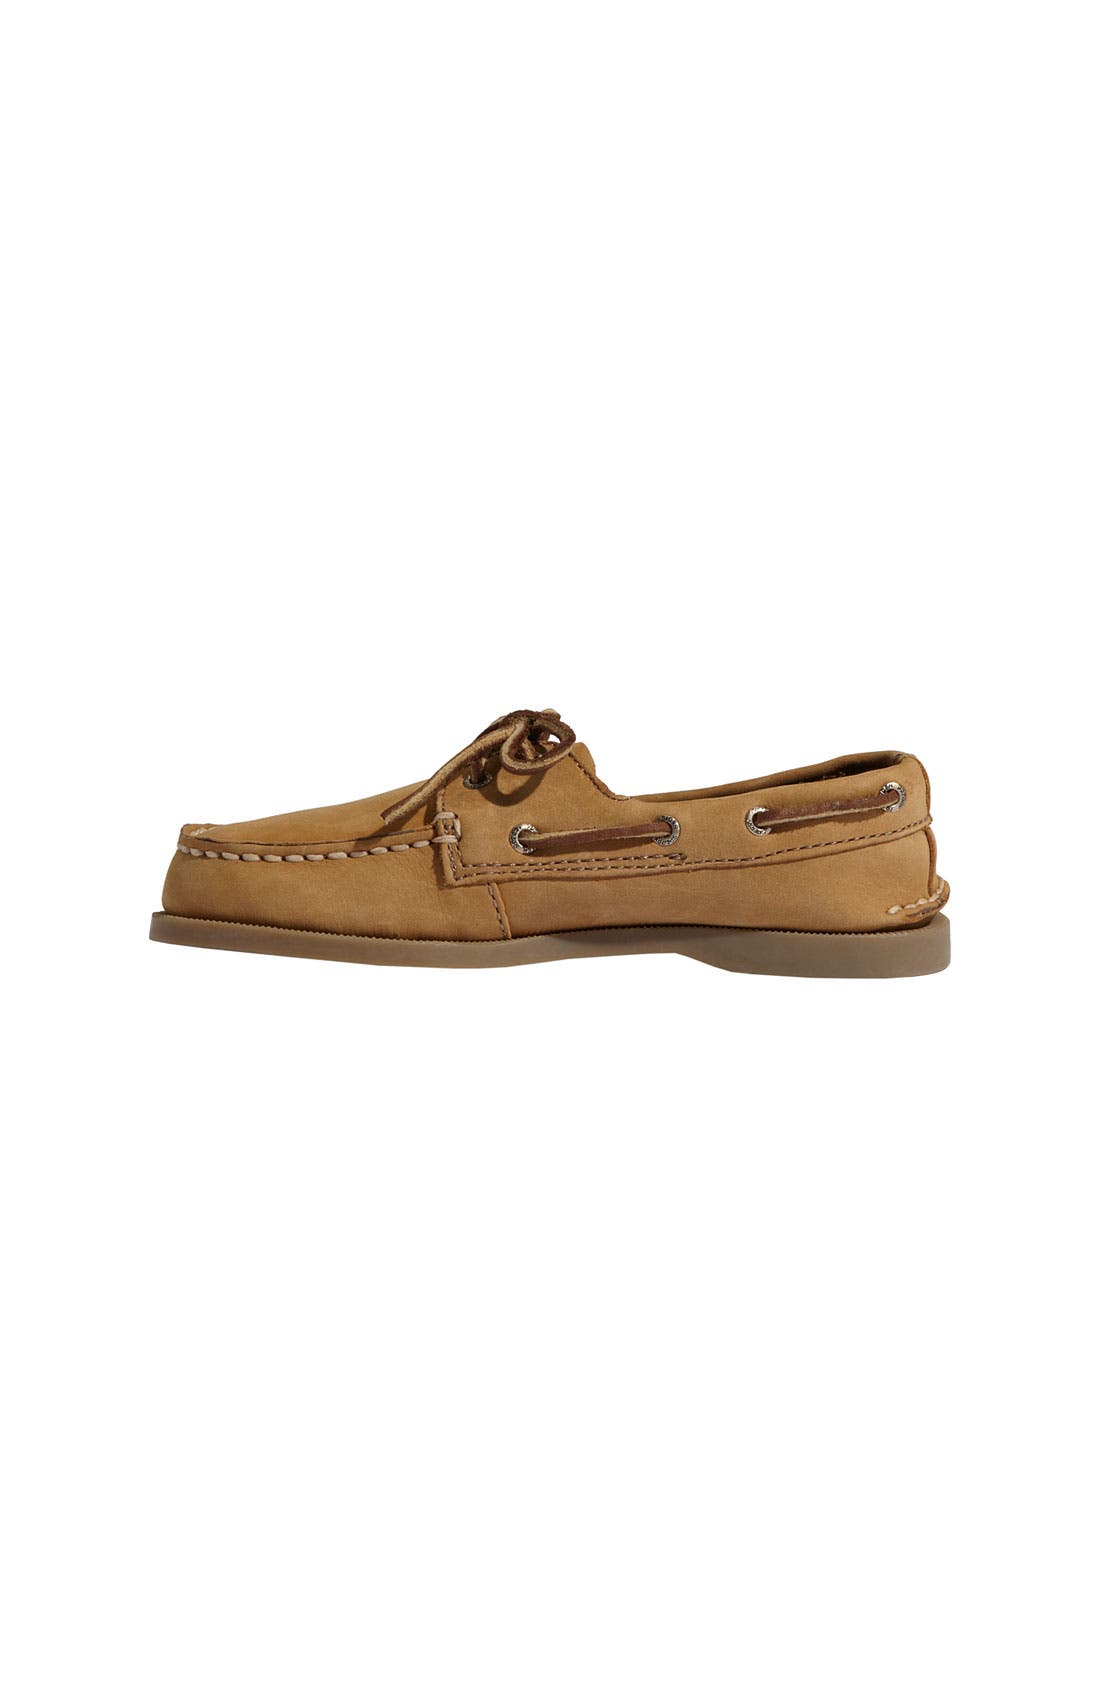 'Authentic Original' Boat Shoe,                             Alternate thumbnail 2, color,                             SAHARA LEATHER